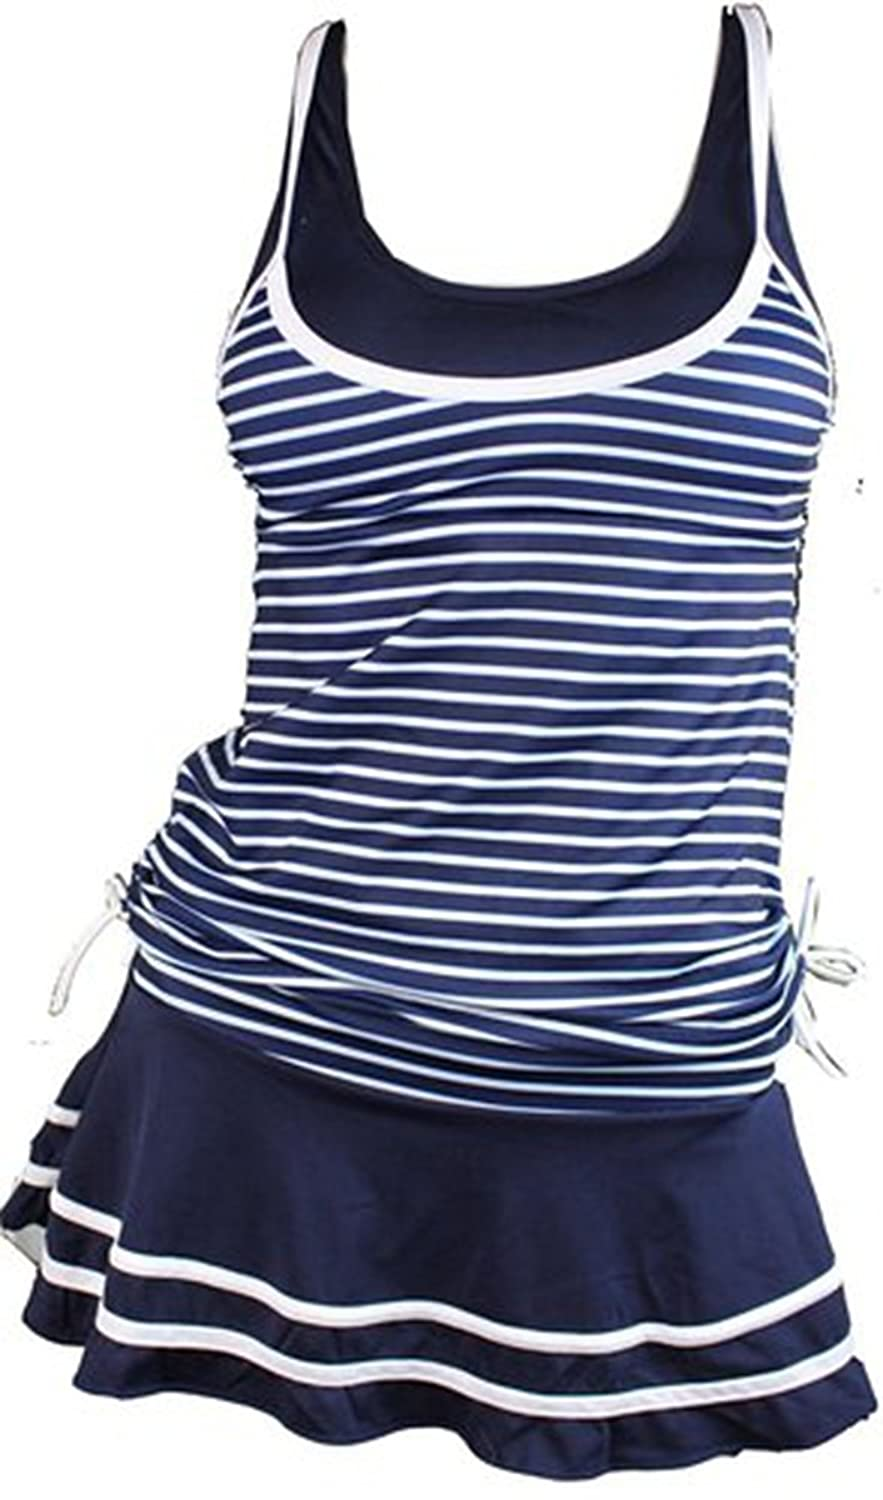 BLINGLAND Tankini Striped Vintage Swim Dress Bathing Suits Swimwear for Women